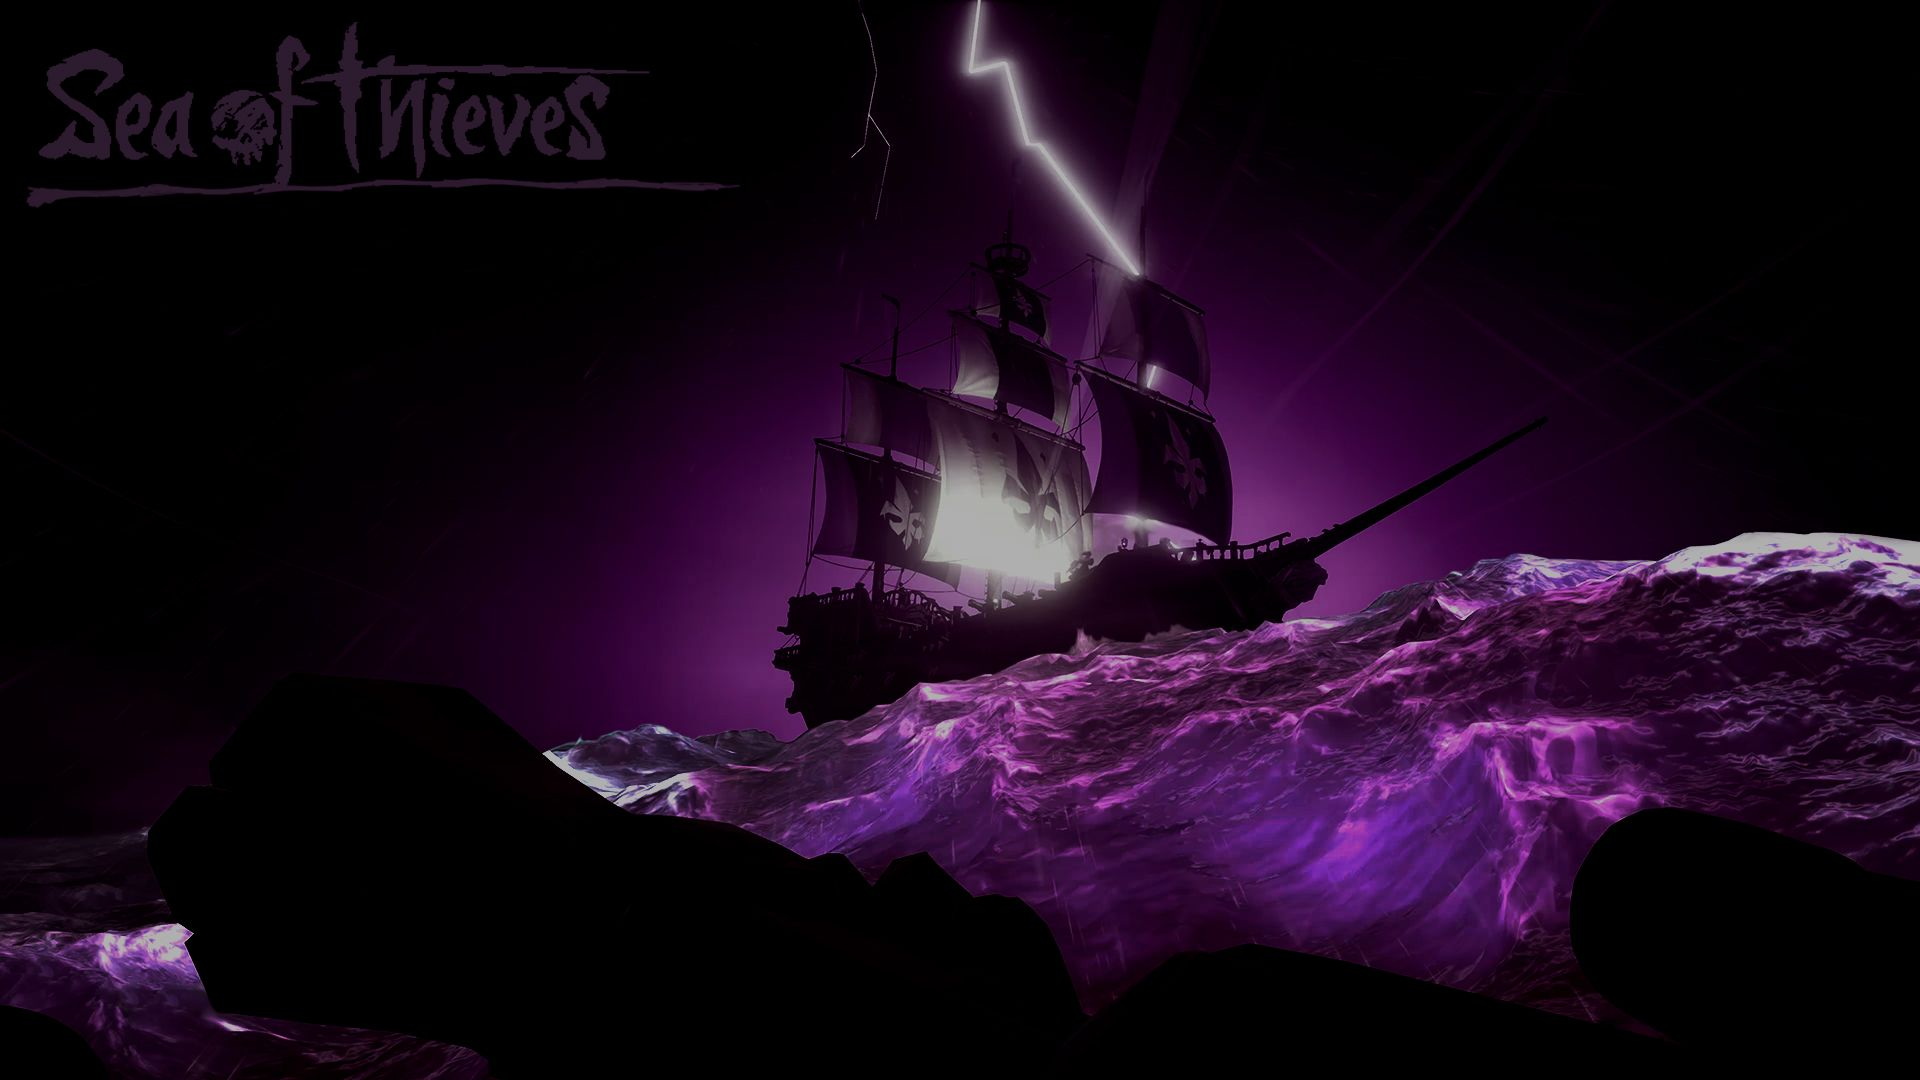 Image Result For Sea Of Thieves Wallpaper Sea Of Thieves